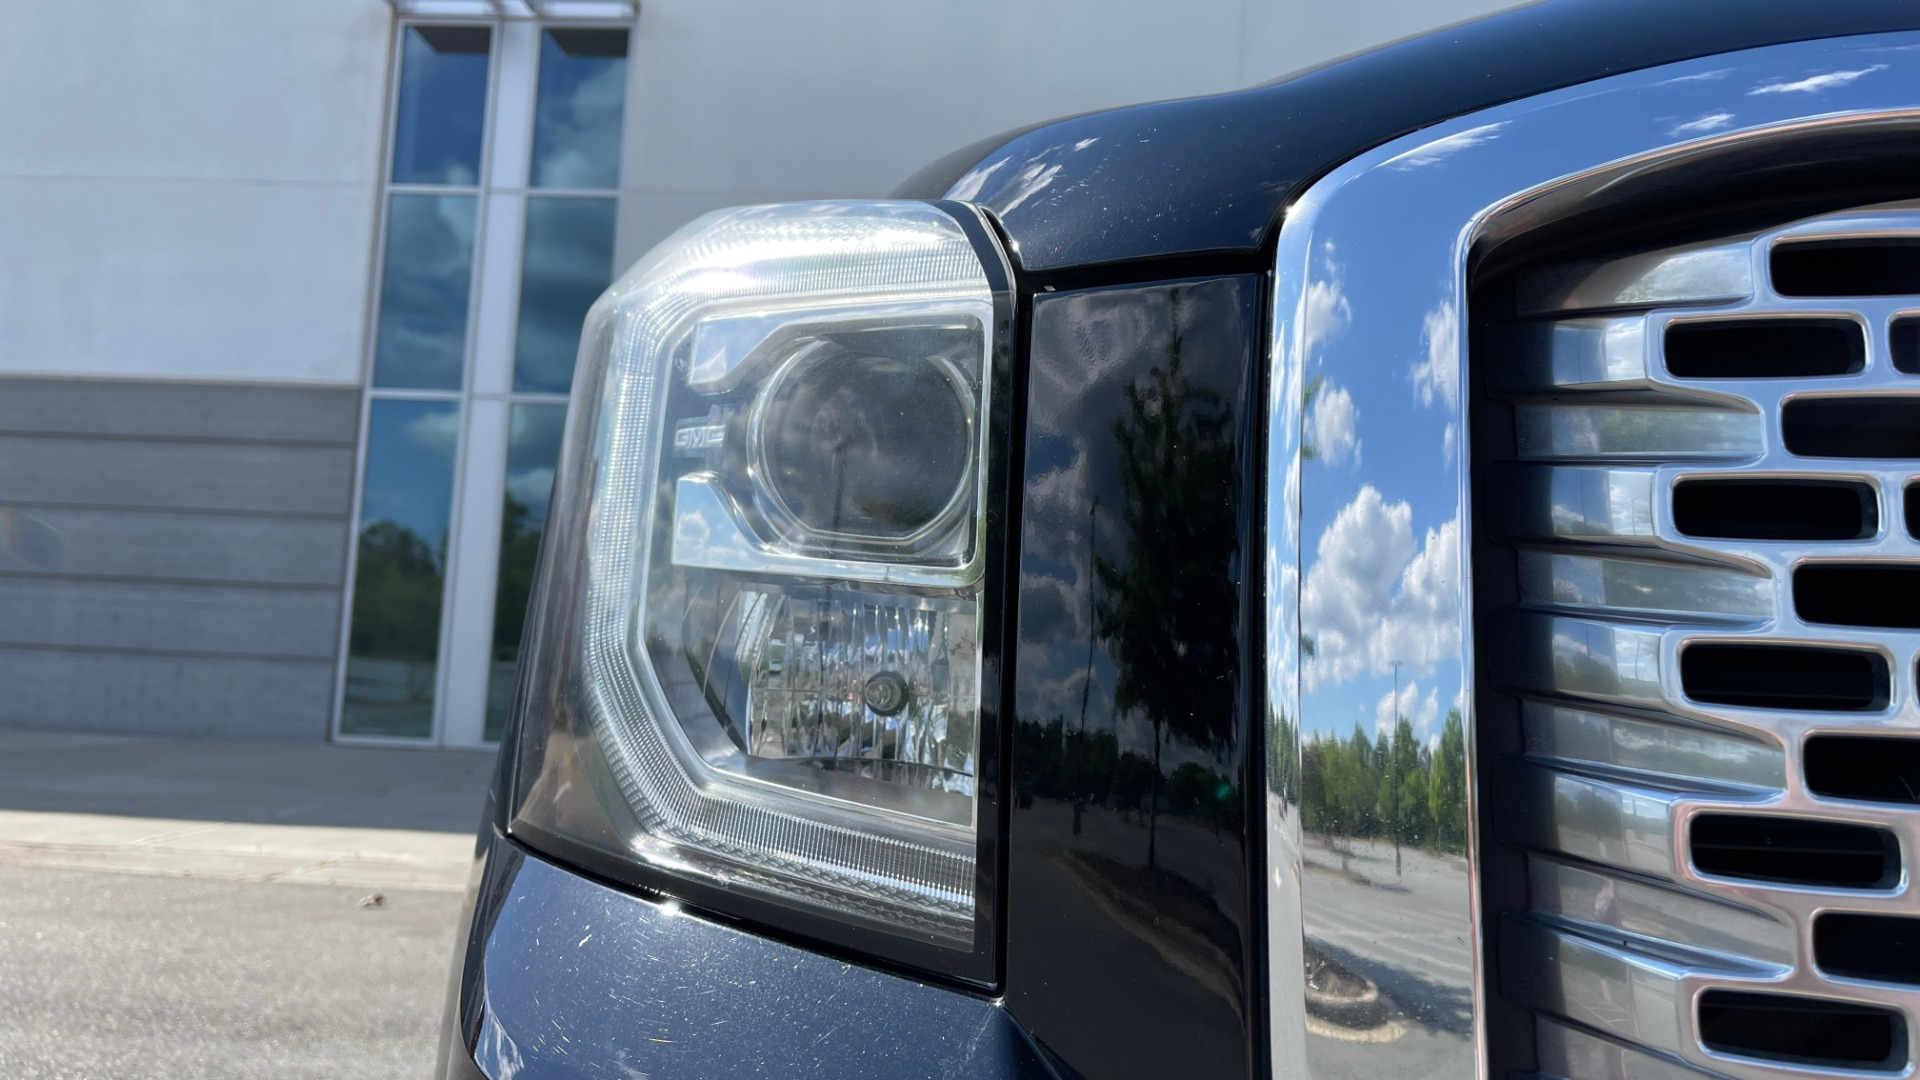 Used 2017 GMC YUKON DENALI 4WD / OPEN ROAD / NAV / ENTERTAINMENT / SUNROOF / ADAPT CRUISE for sale Sold at Formula Imports in Charlotte NC 28227 13